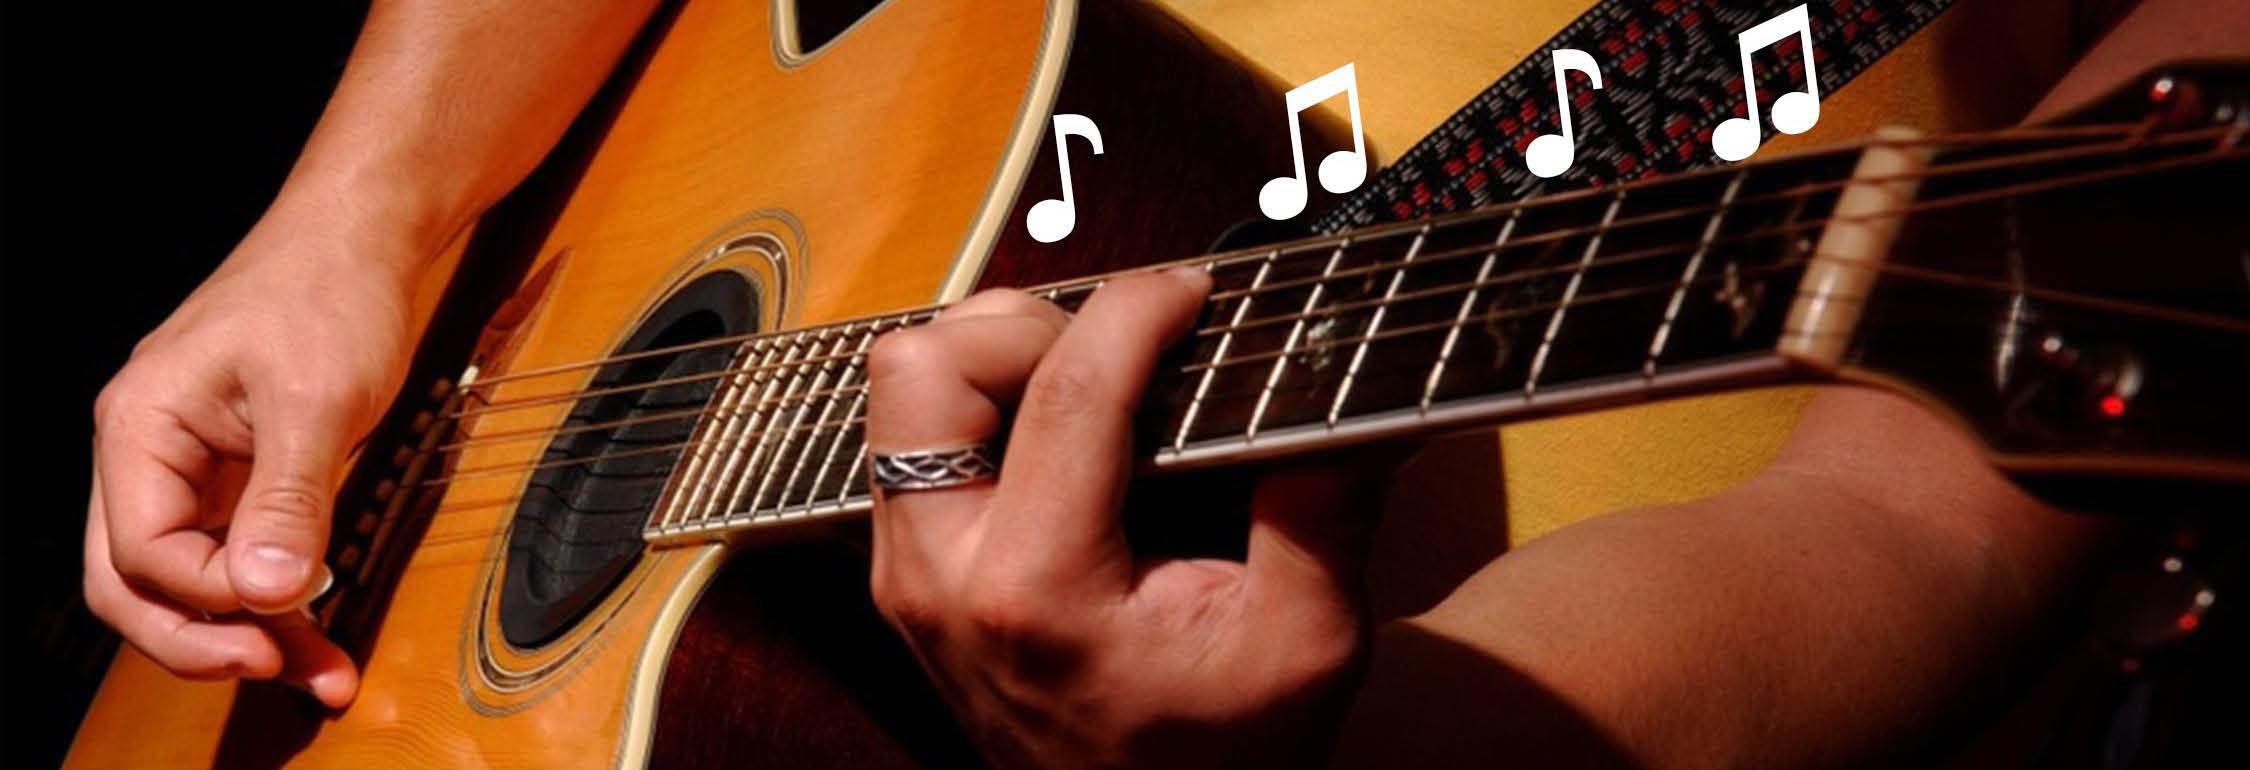 Music Lessons Rahway, NJ - Union County Music Lessons - Guitar Lessons Near Me